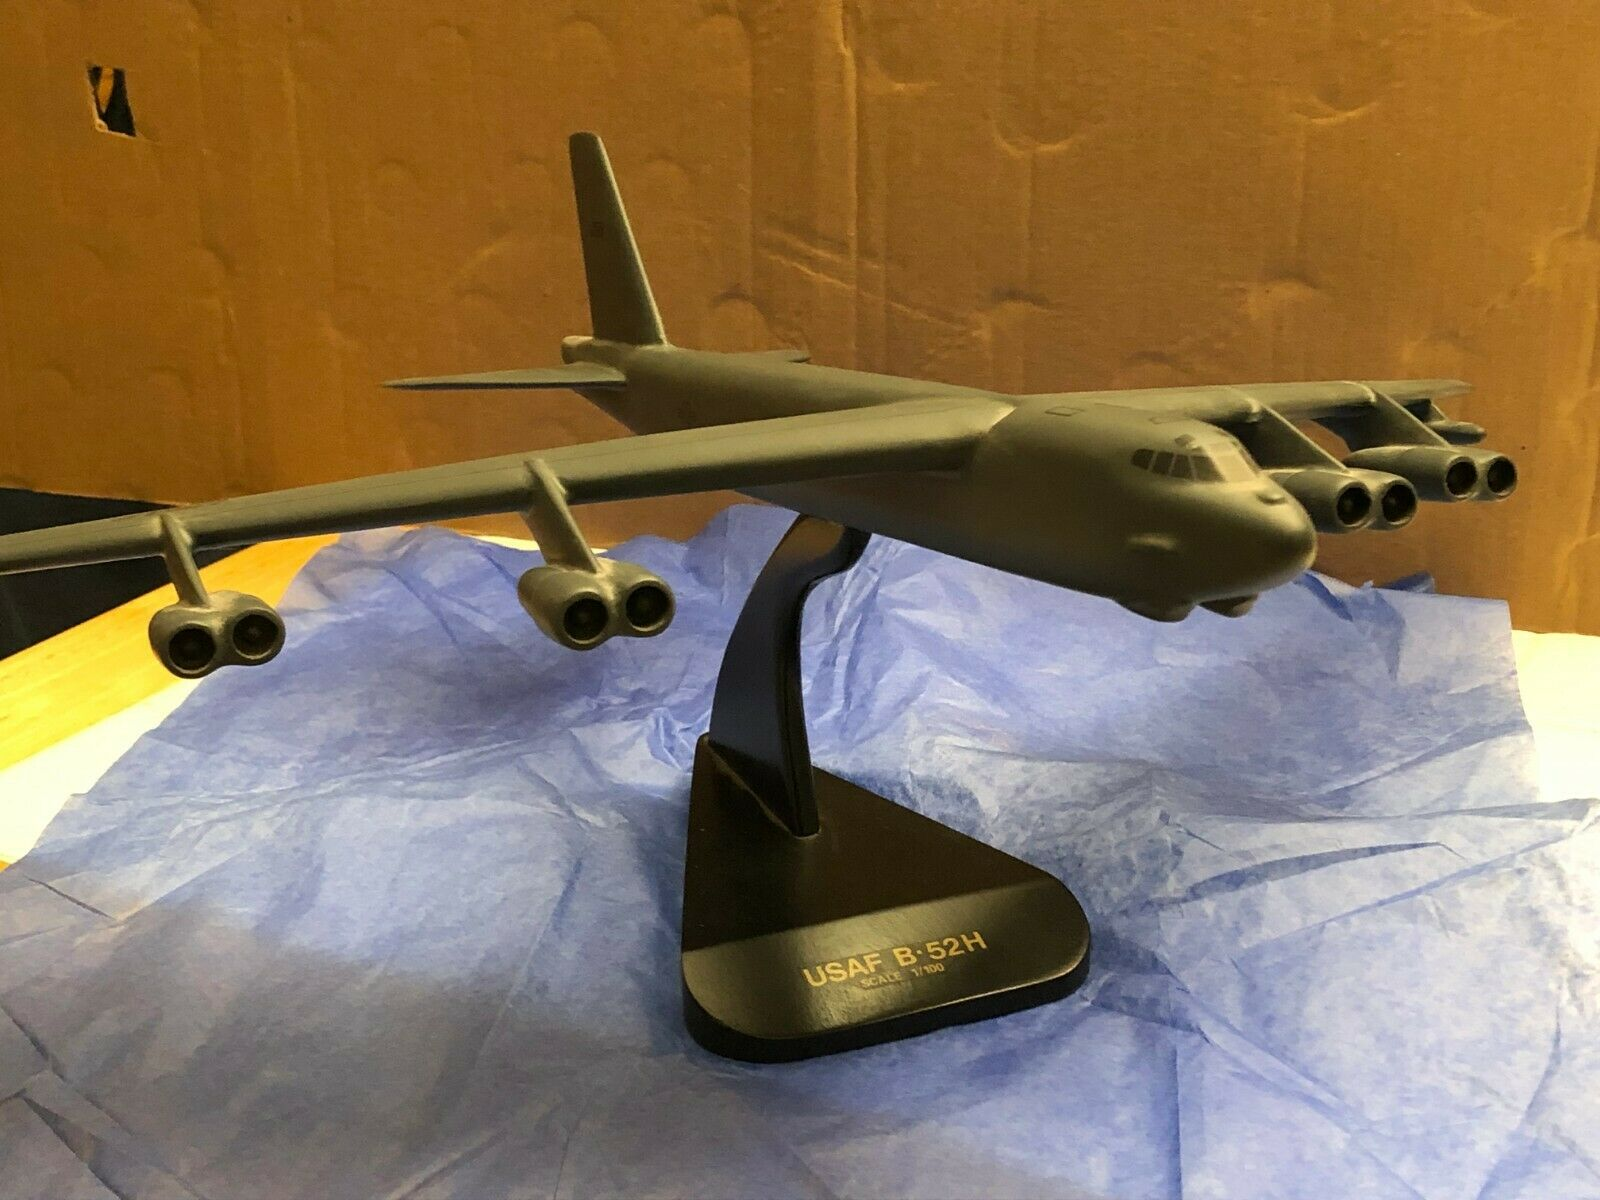 US Air Force B-52H 1 100 Scale Model Plane